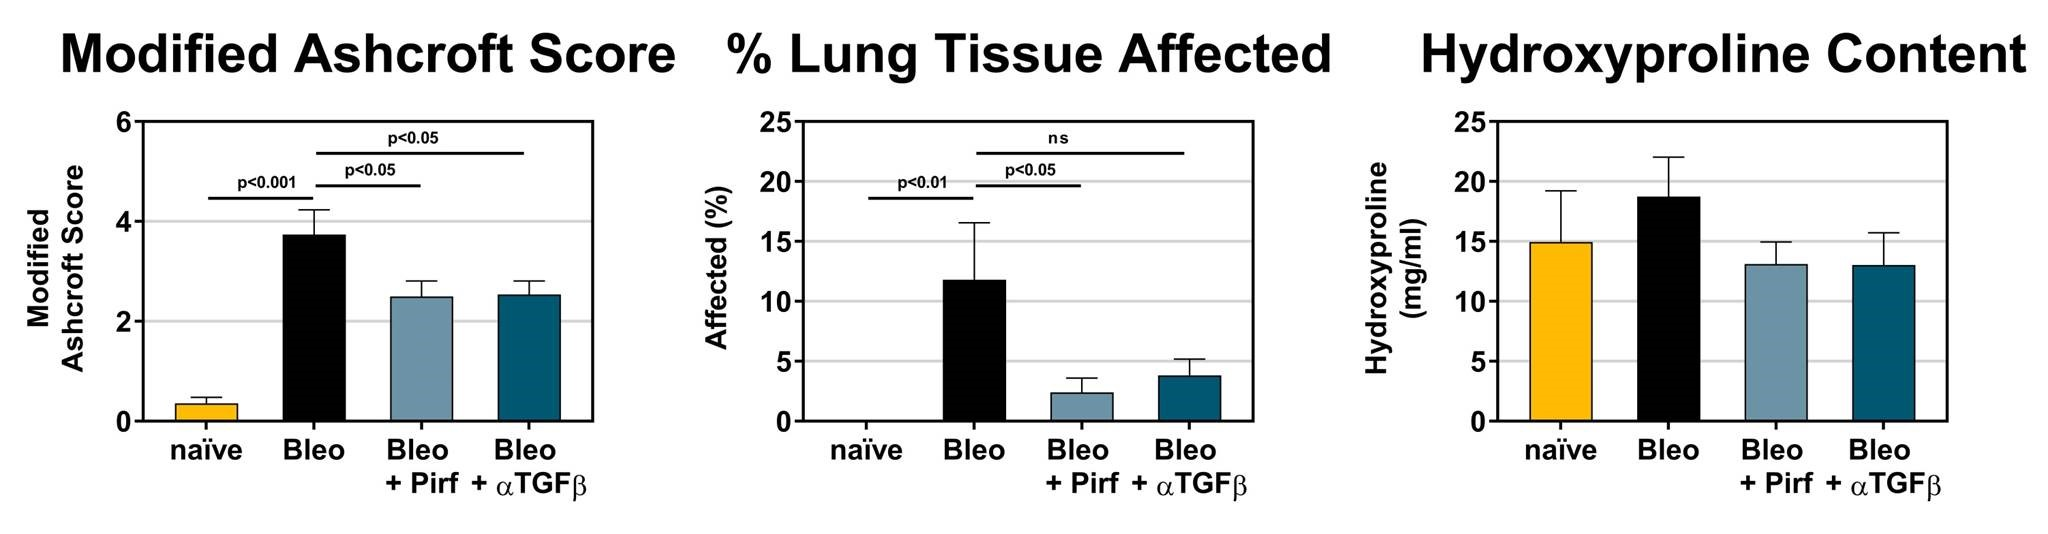 Measures of fibrosis are improved in mice dosed with Bleomycin (IT) when treated with either Pirfenidone or anti-TGFβ neutralizing antibody.